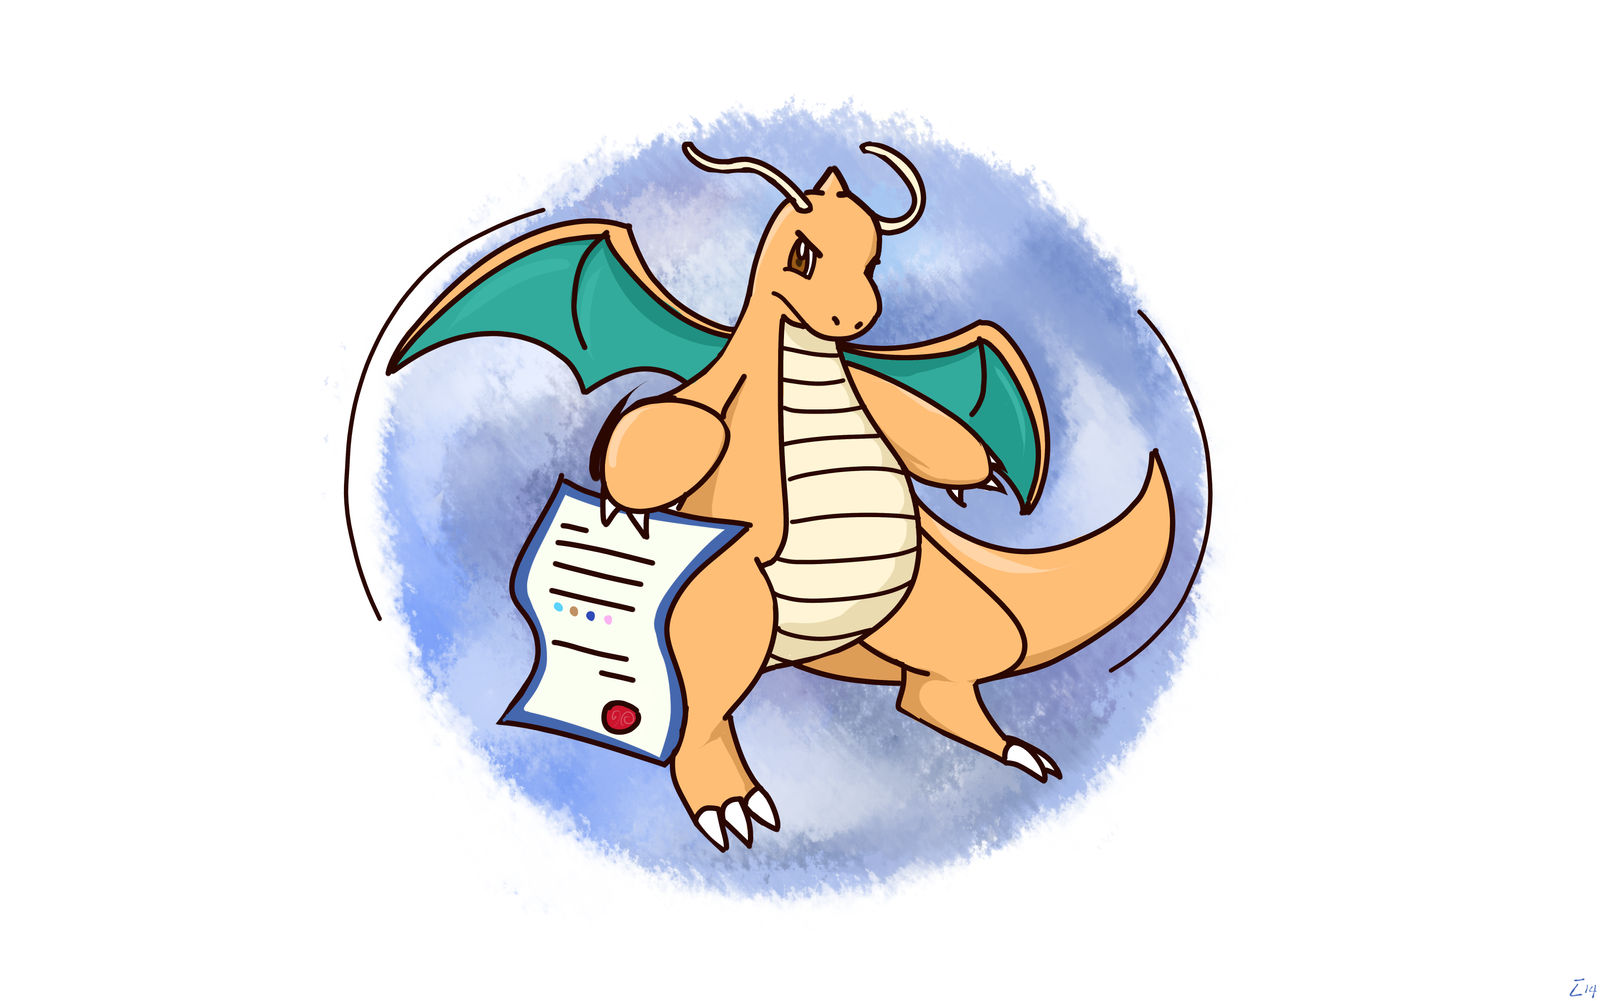 Dragonite Weakness Policy By Ishmam On Deviantart The weakness policy is consumed when this occurs. dragonite weakness policy by ishmam